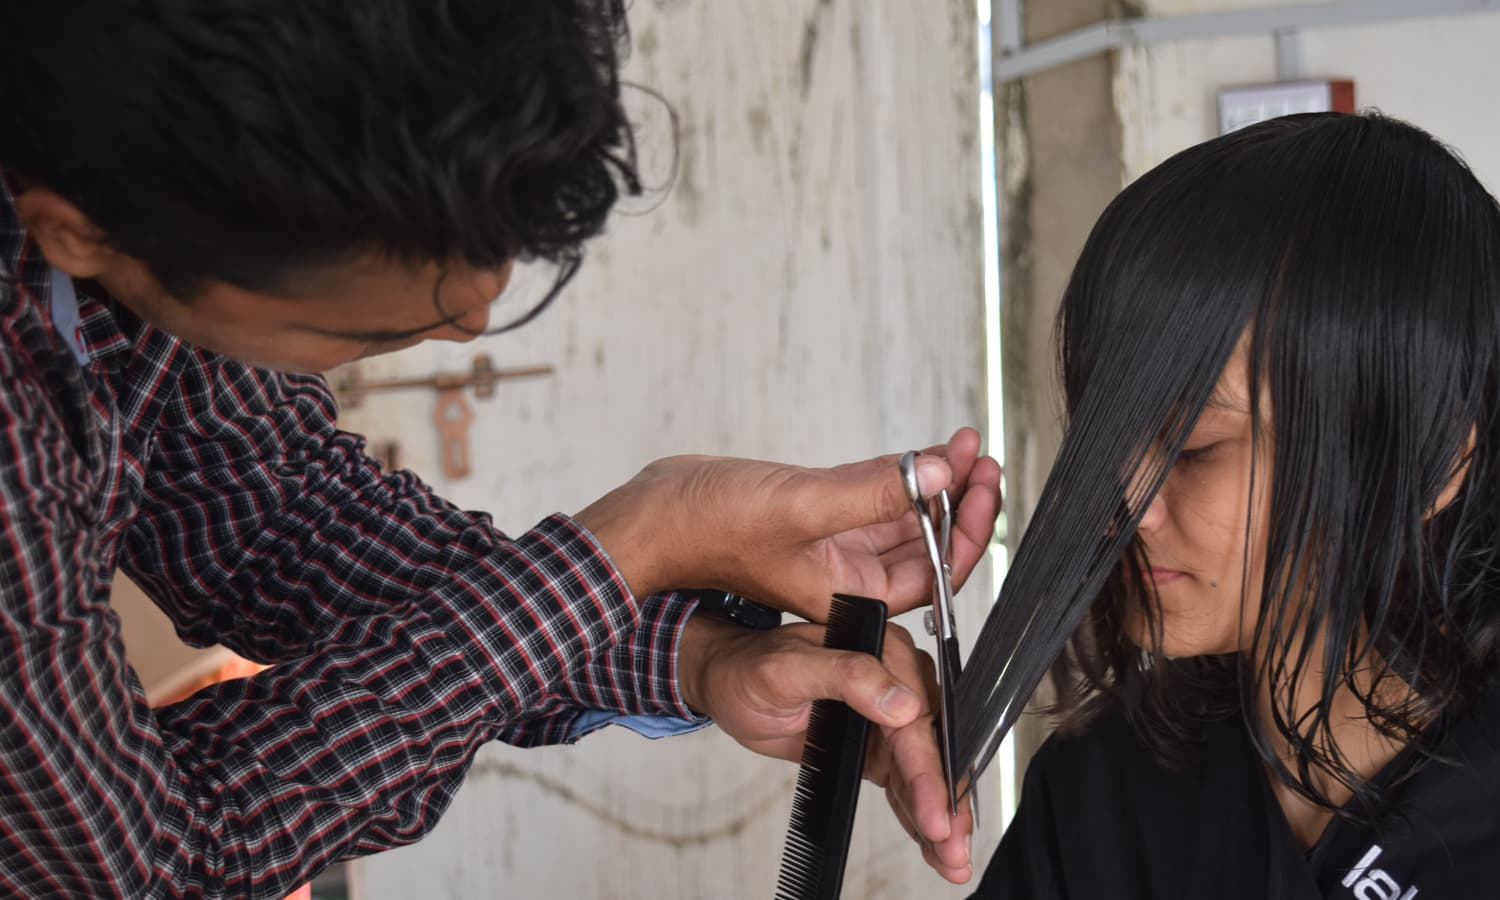 Shahid eyes precision as he cuts one participant's hair. — Photo by Yumna Rafi